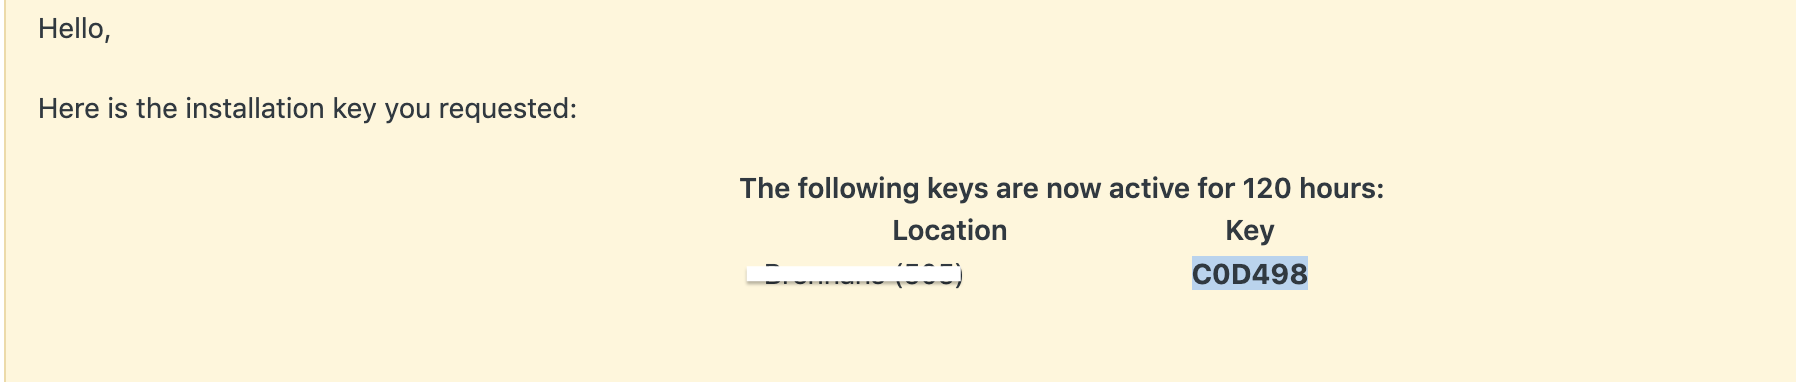 FindInstallationKey.png